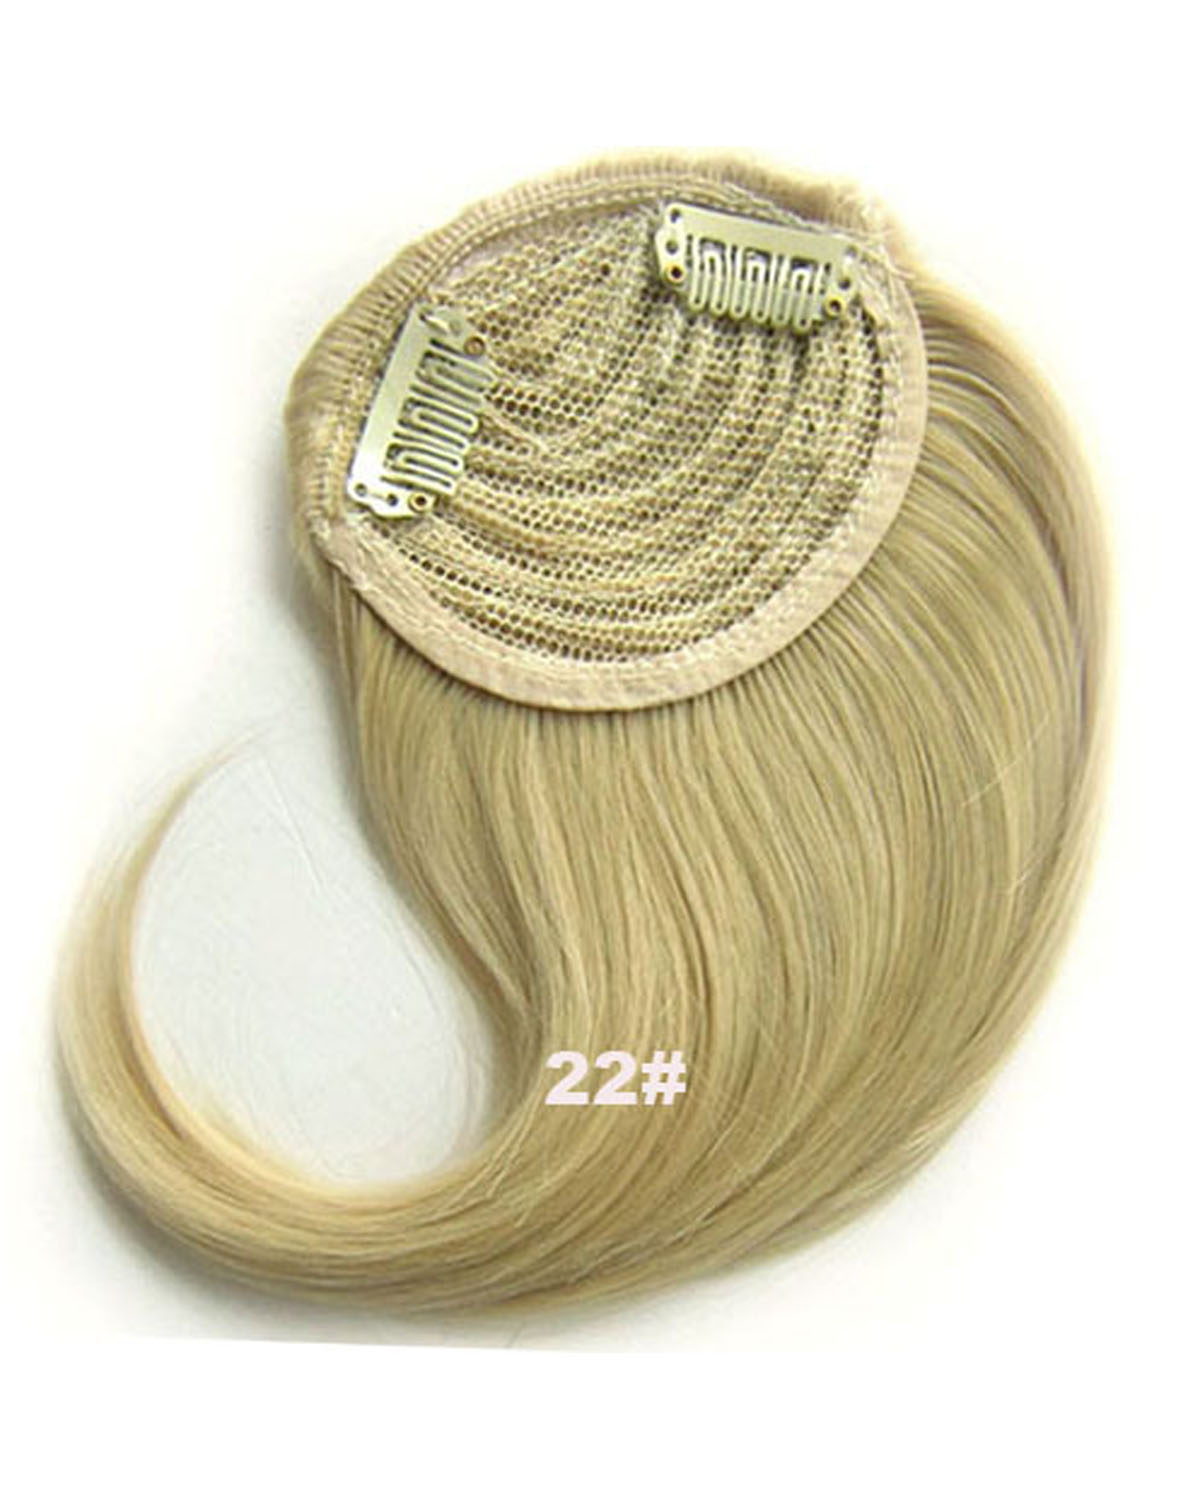 Girls Attractive Straight Short Bangs Clip in Synthetic Hair Extension Fringe Bangs Hairpiece22#